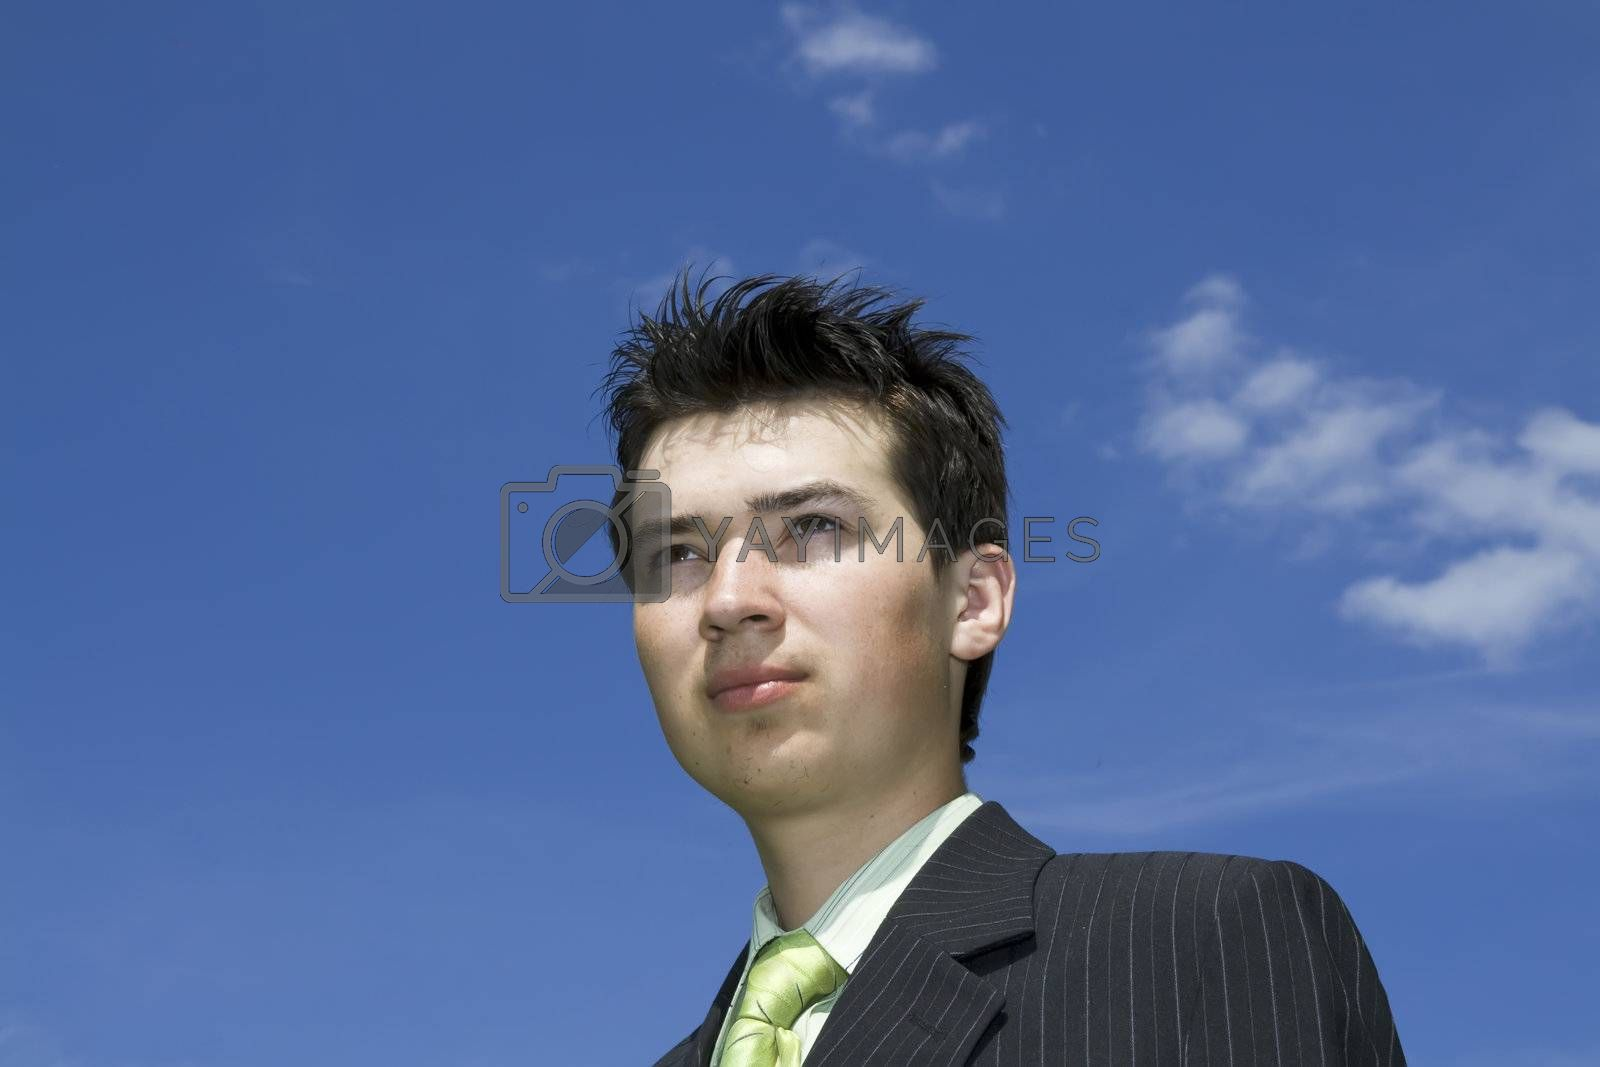 Portrait of happy young man on blue sky background; copy space